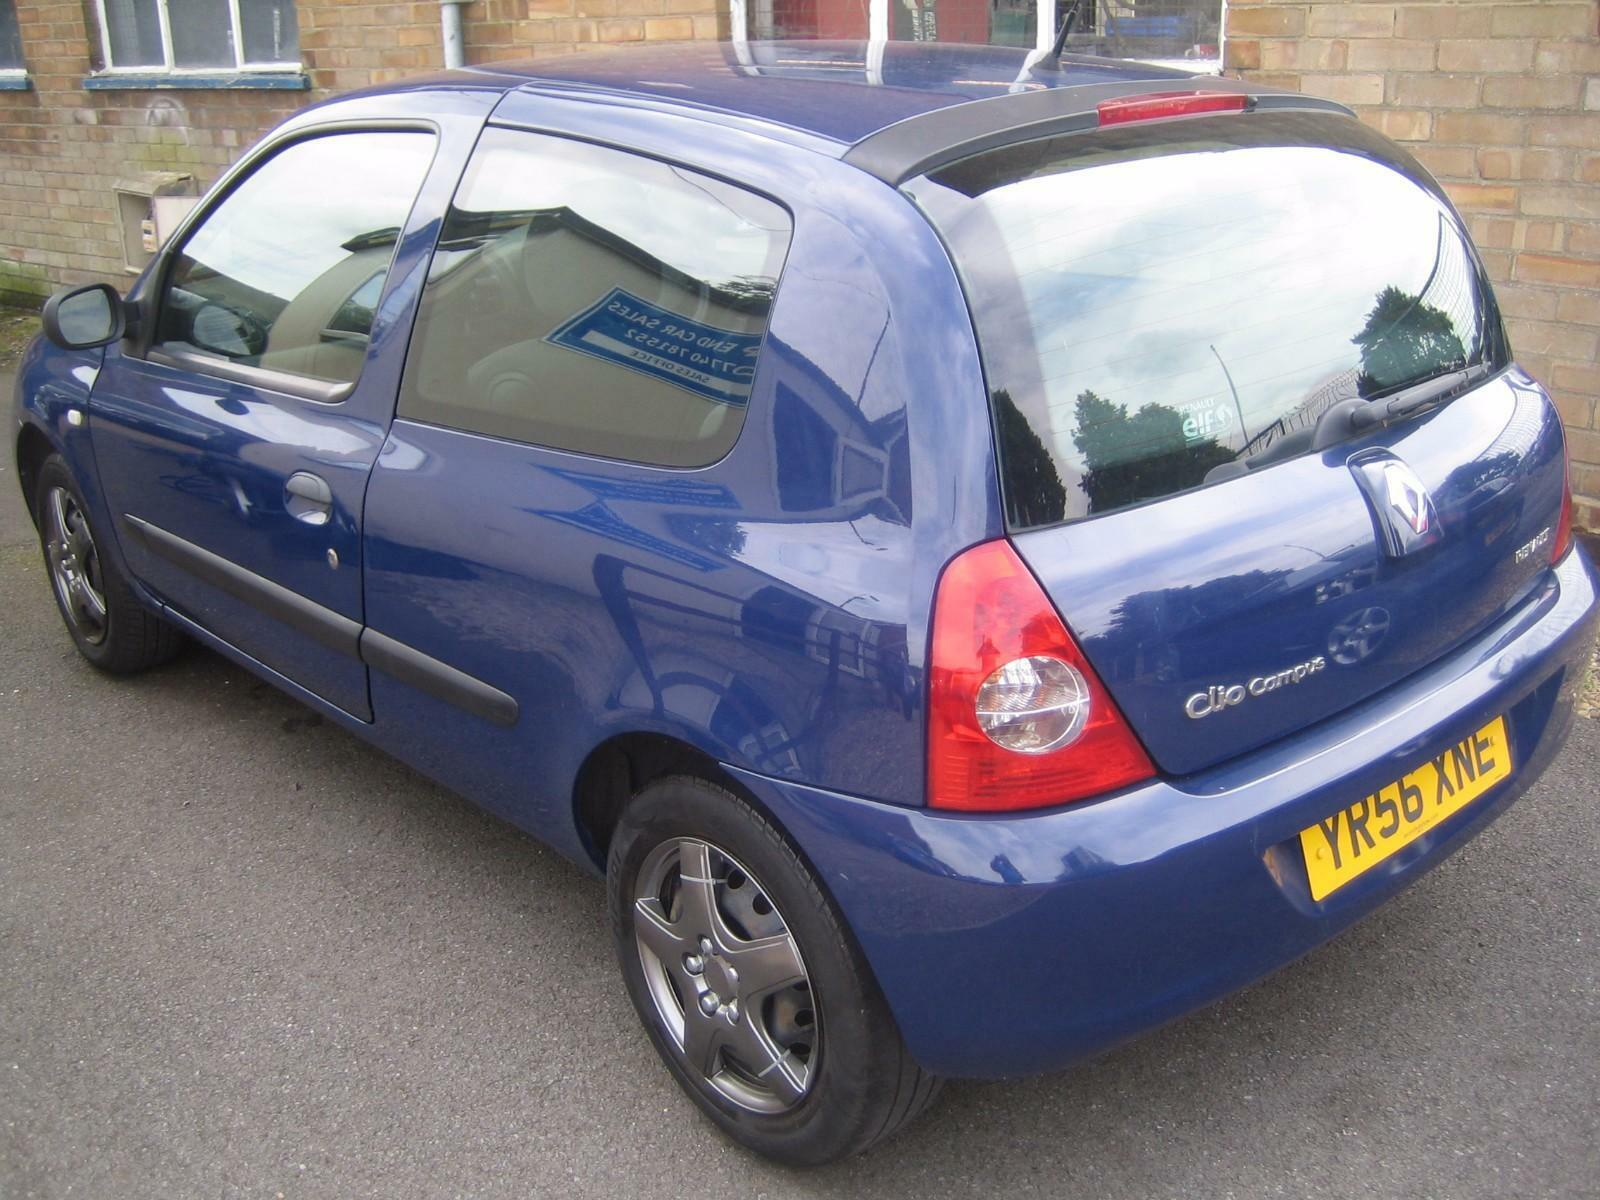 56 renault clio 1 2 60bhp campus 3 door picclick uk. Black Bedroom Furniture Sets. Home Design Ideas